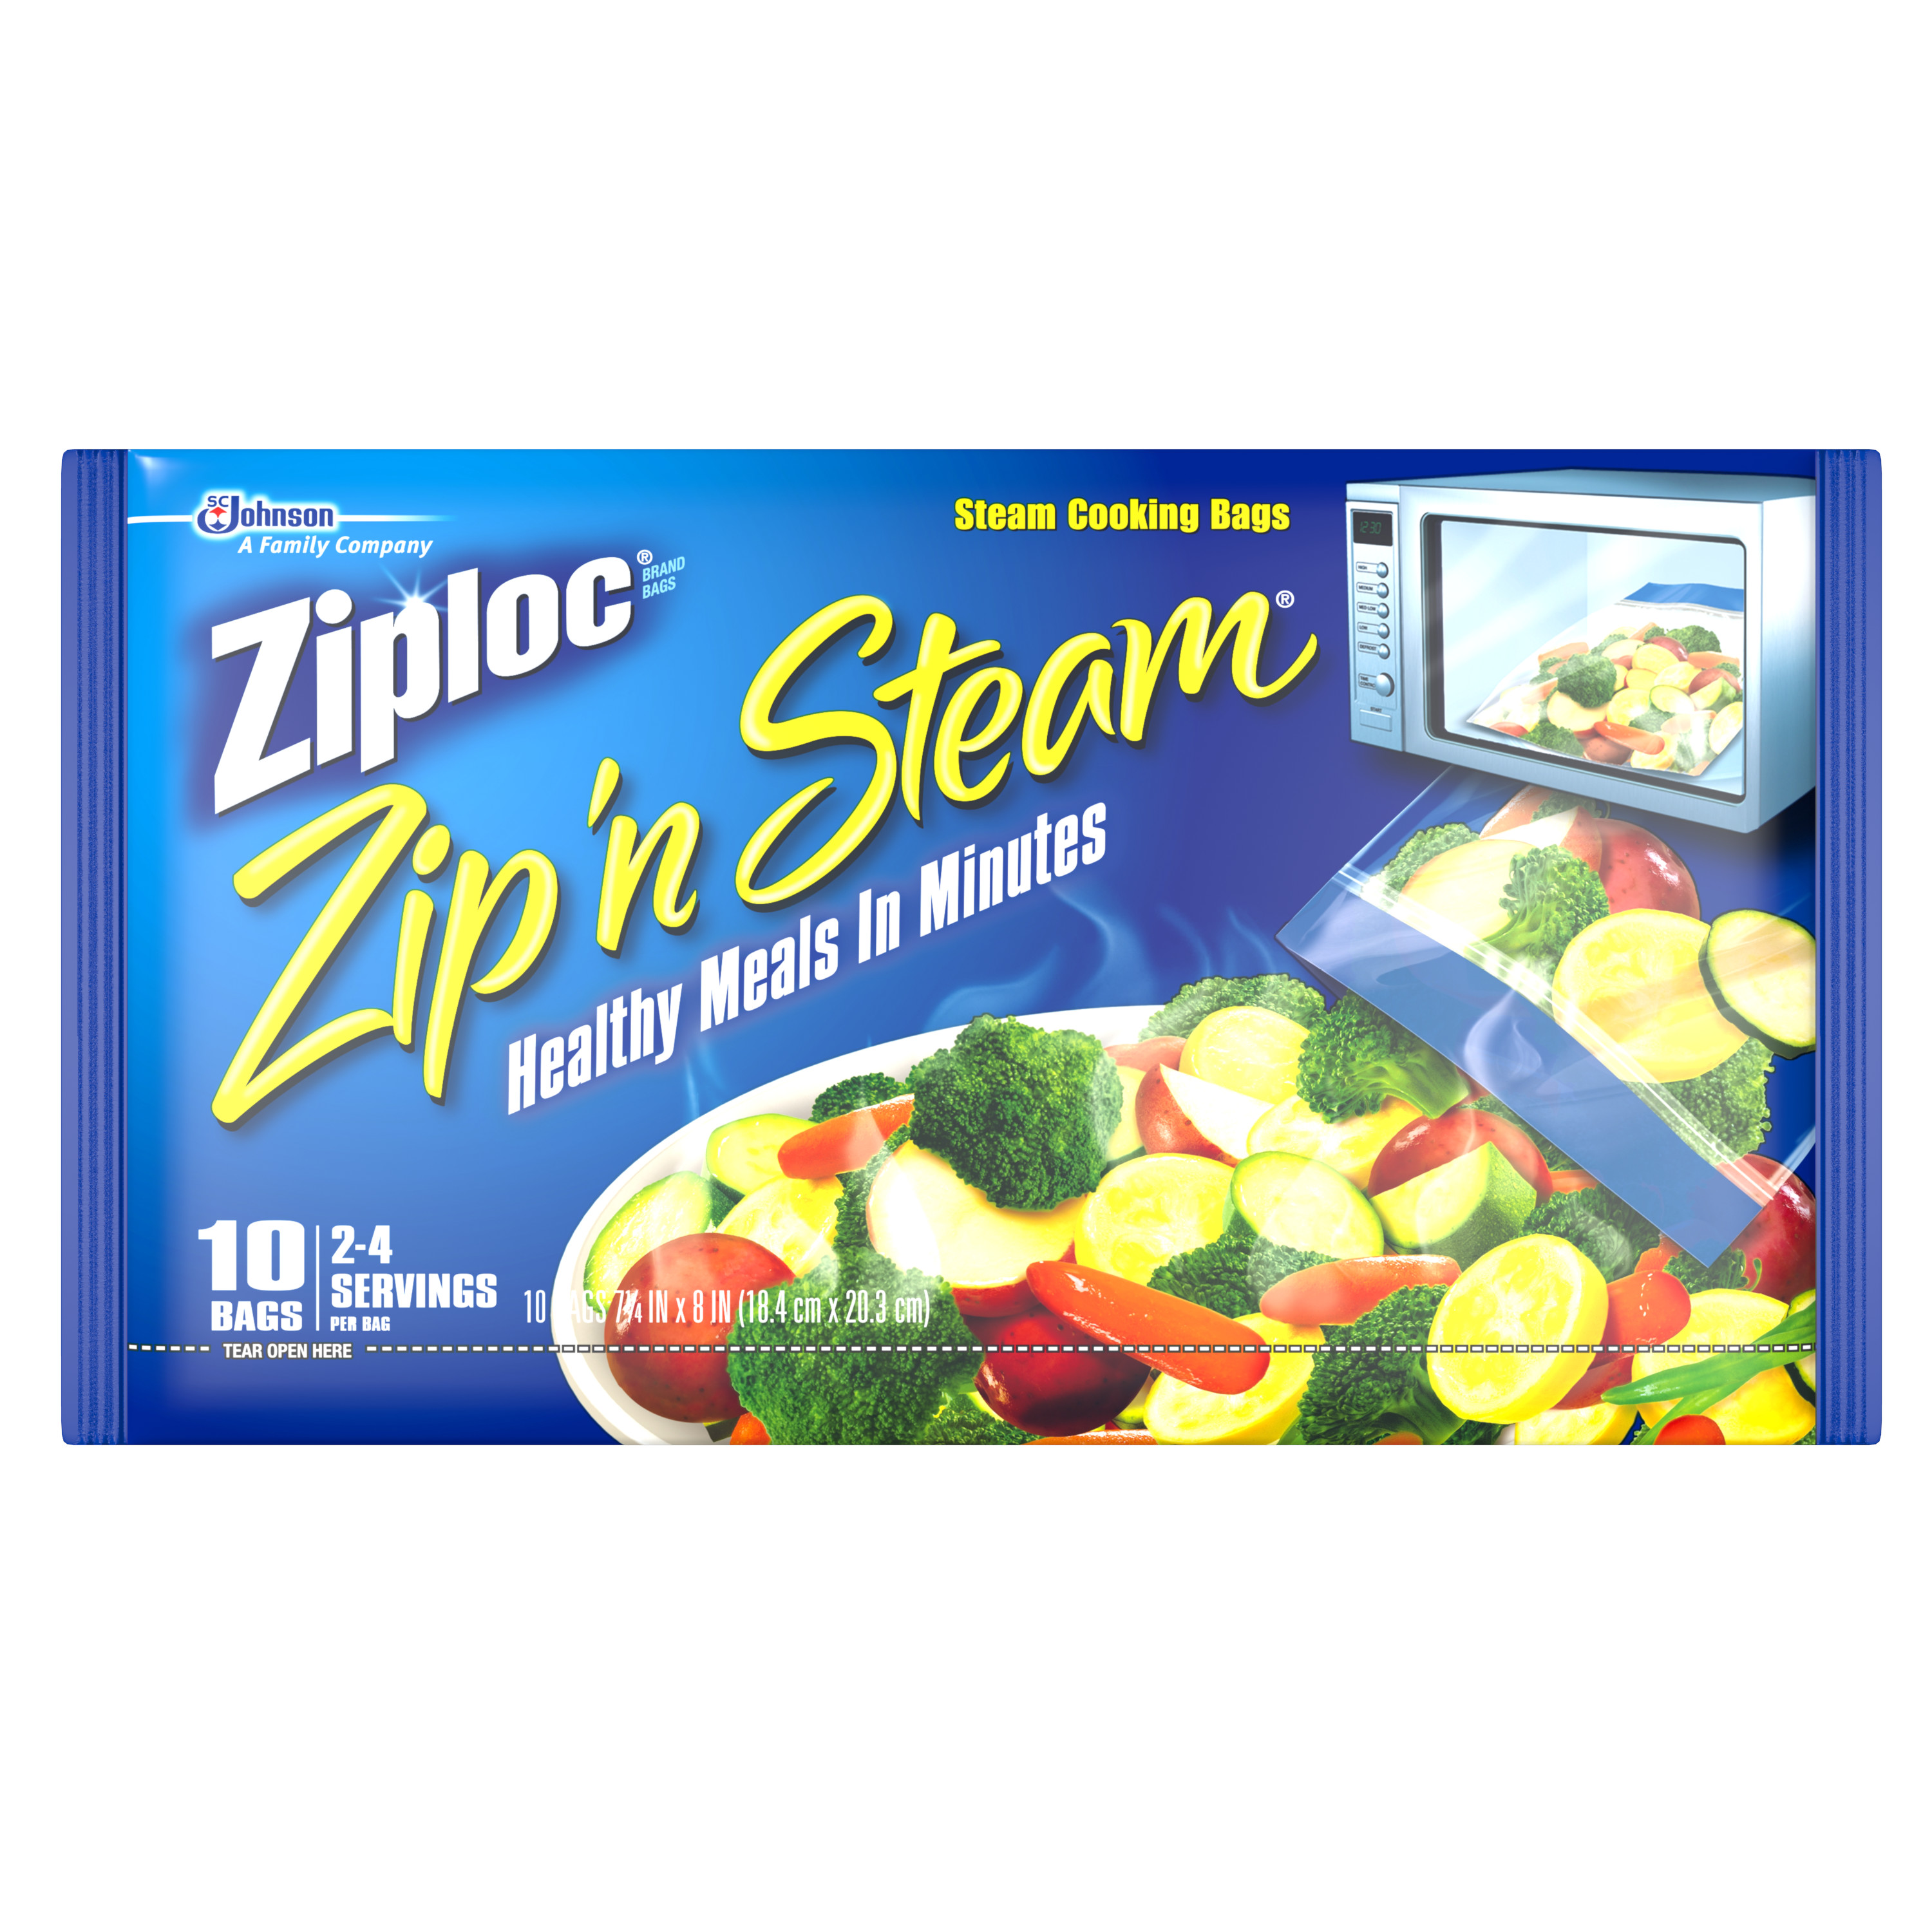 Ziploc Zip'n'Steam Microwave Cooking Bags, Medium - 10 bags